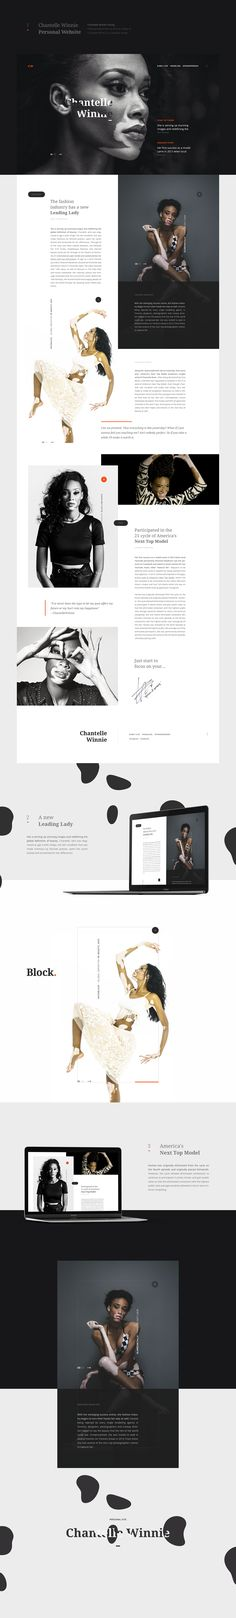 Chantelle Winnie Personal Website on Behance